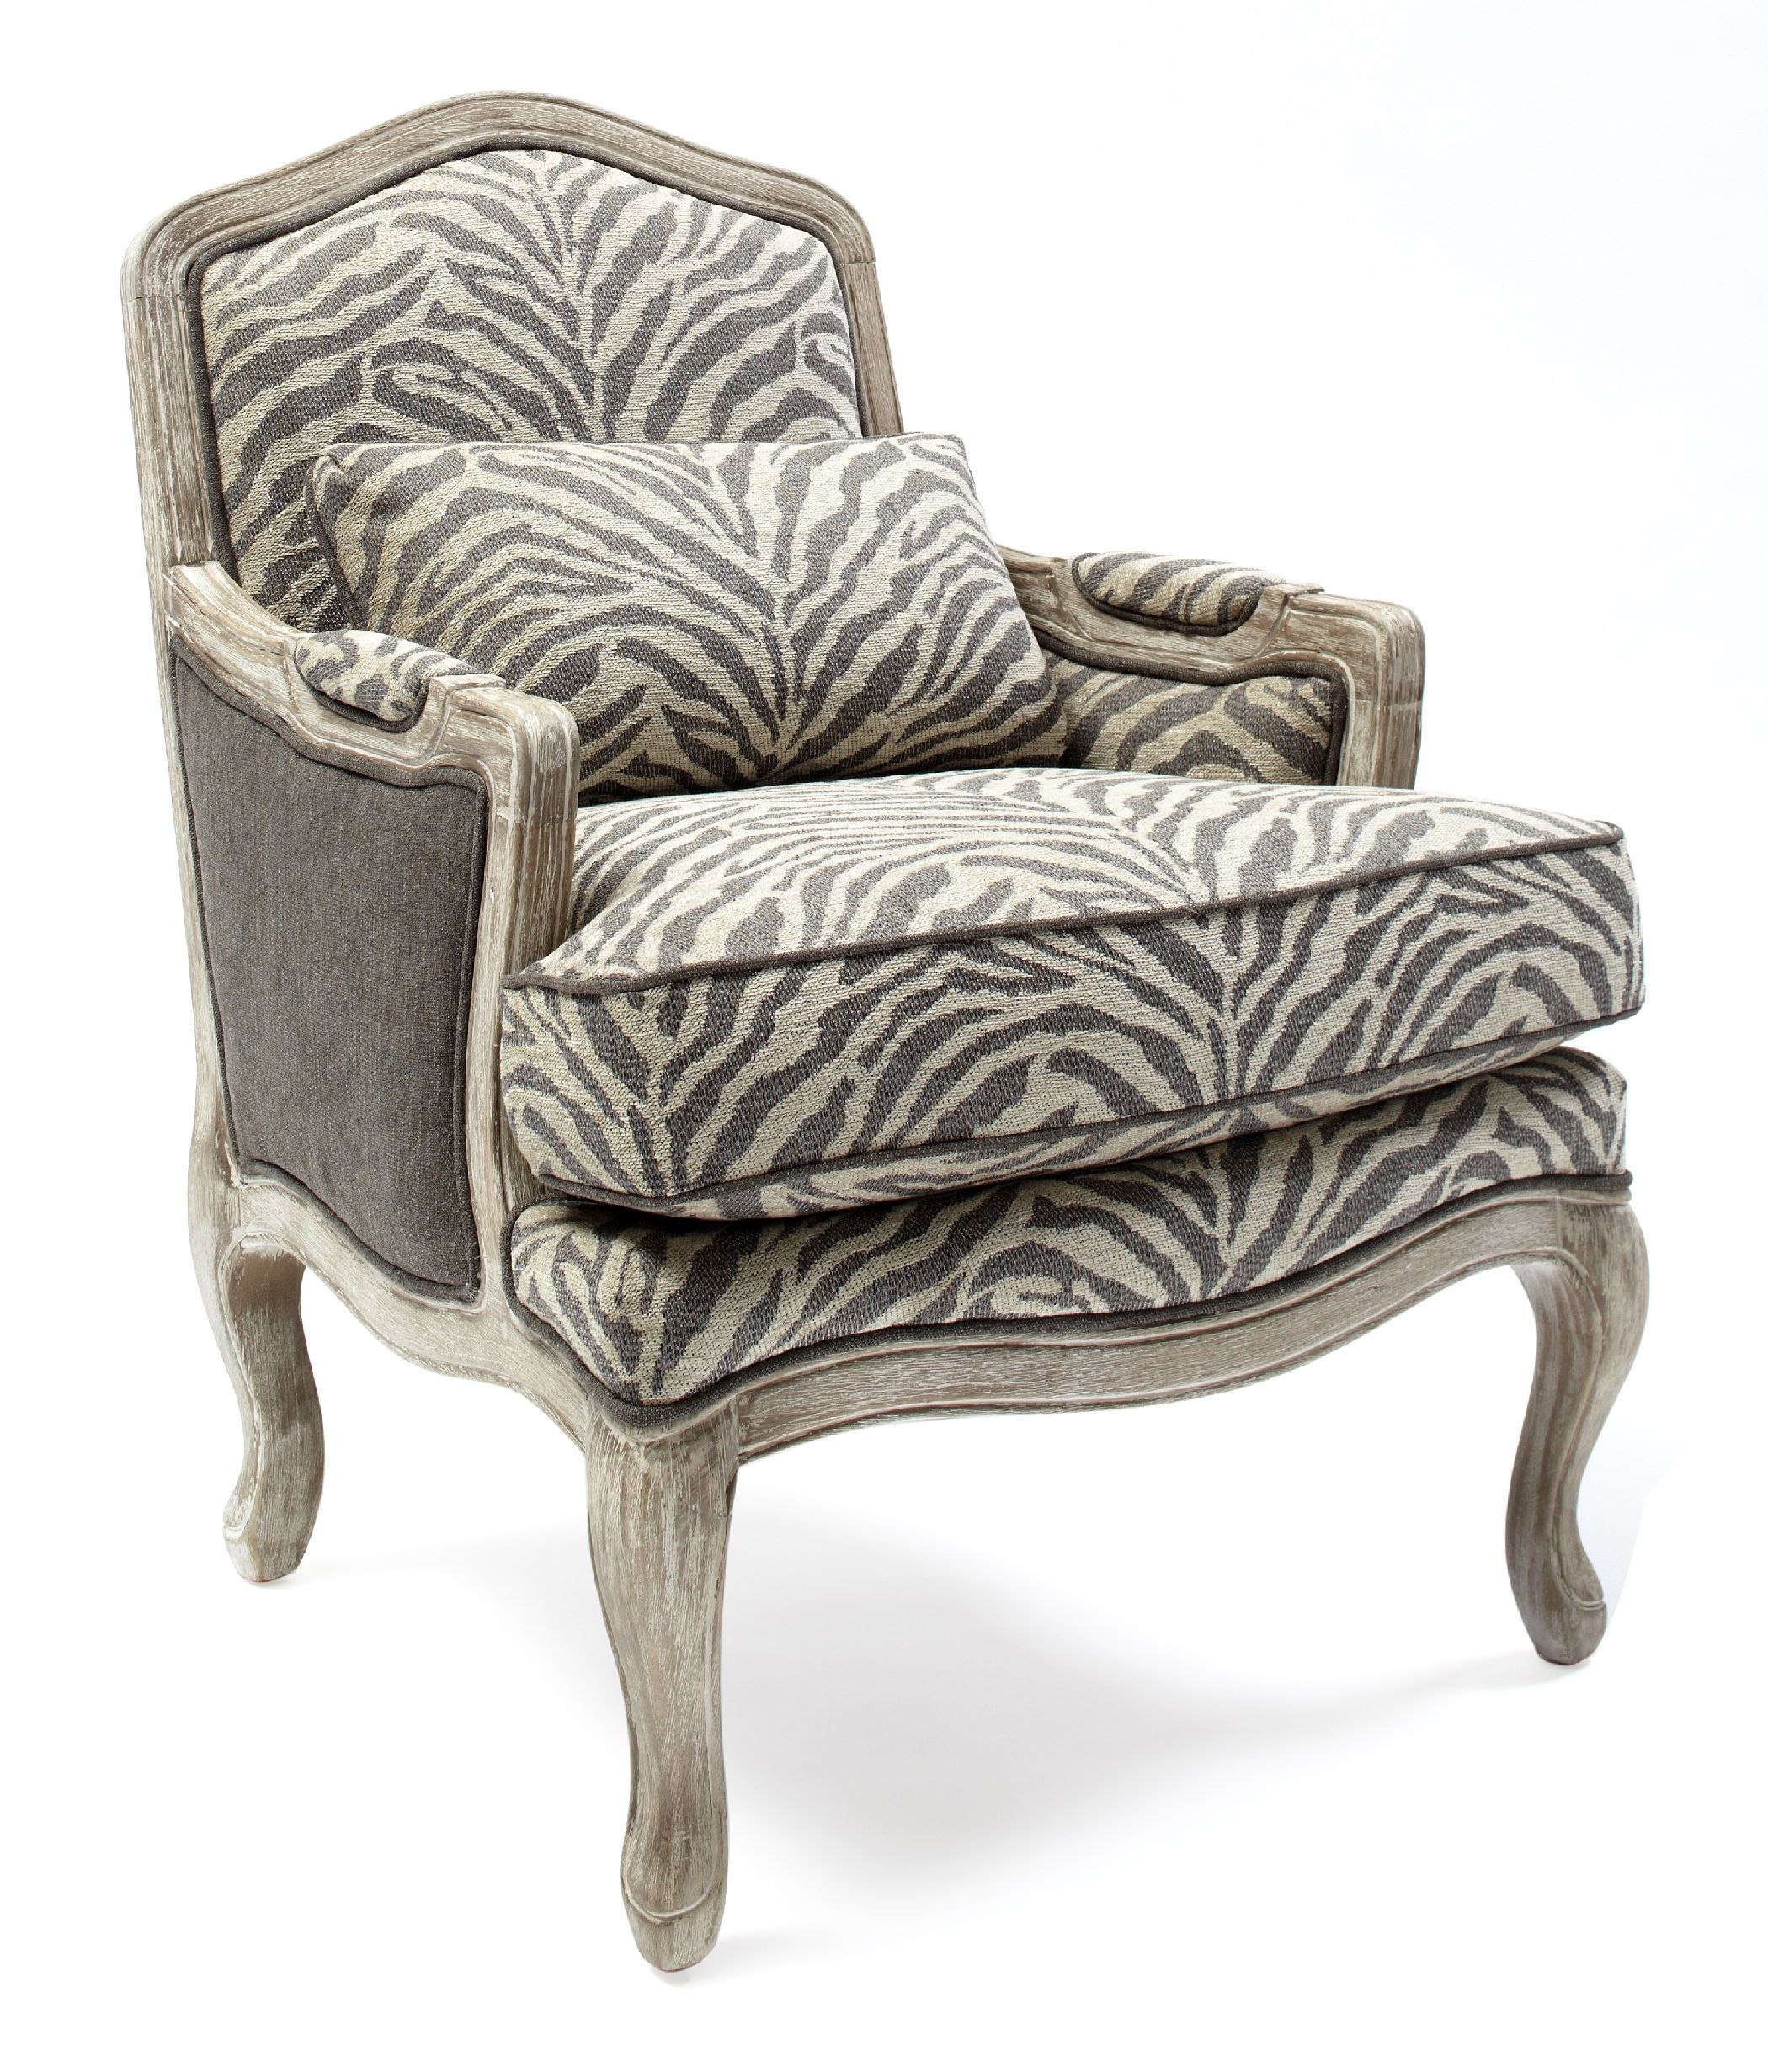 Avignon Kenya Chair St 445541 Animal Print Chair White Leather